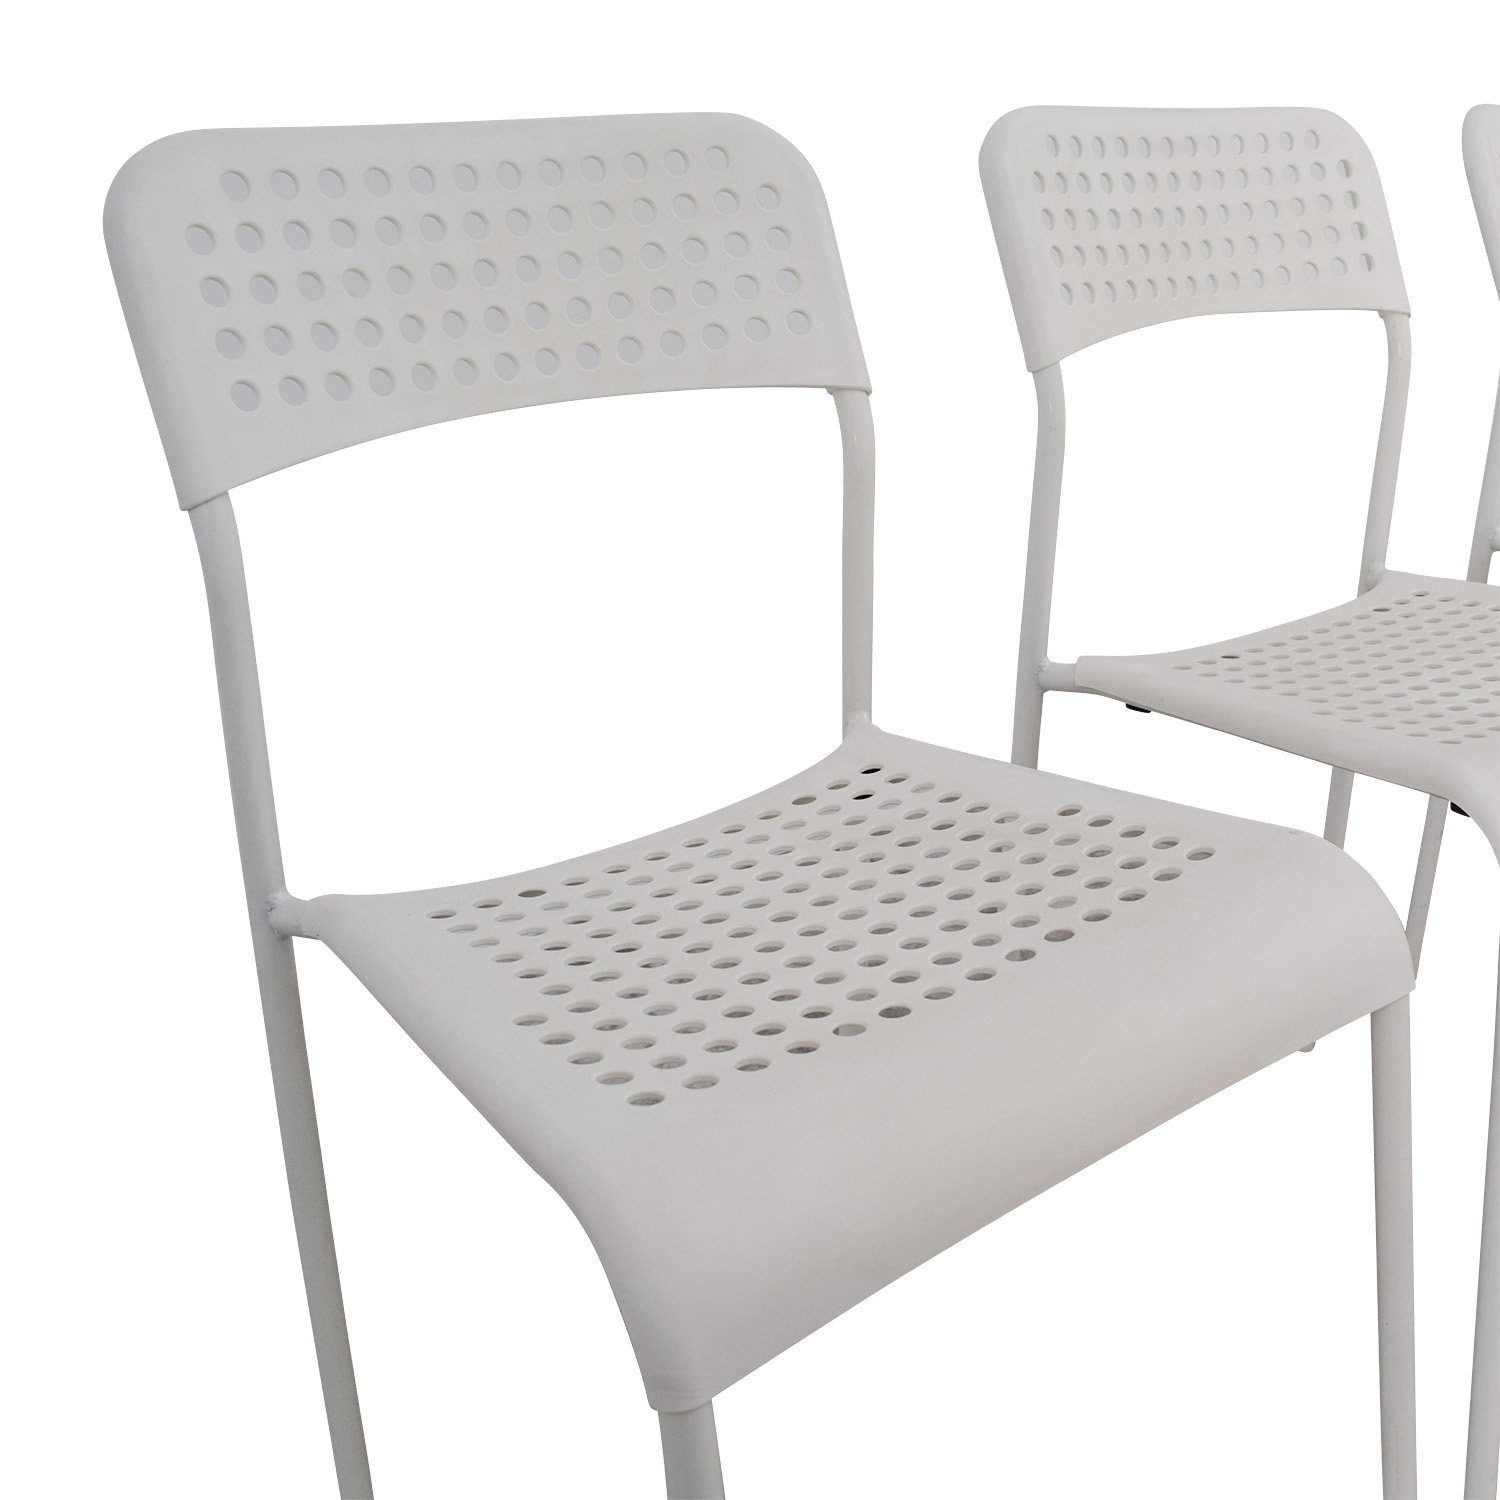 69 off ikea ikea white chairs chairs for Ikea white chair